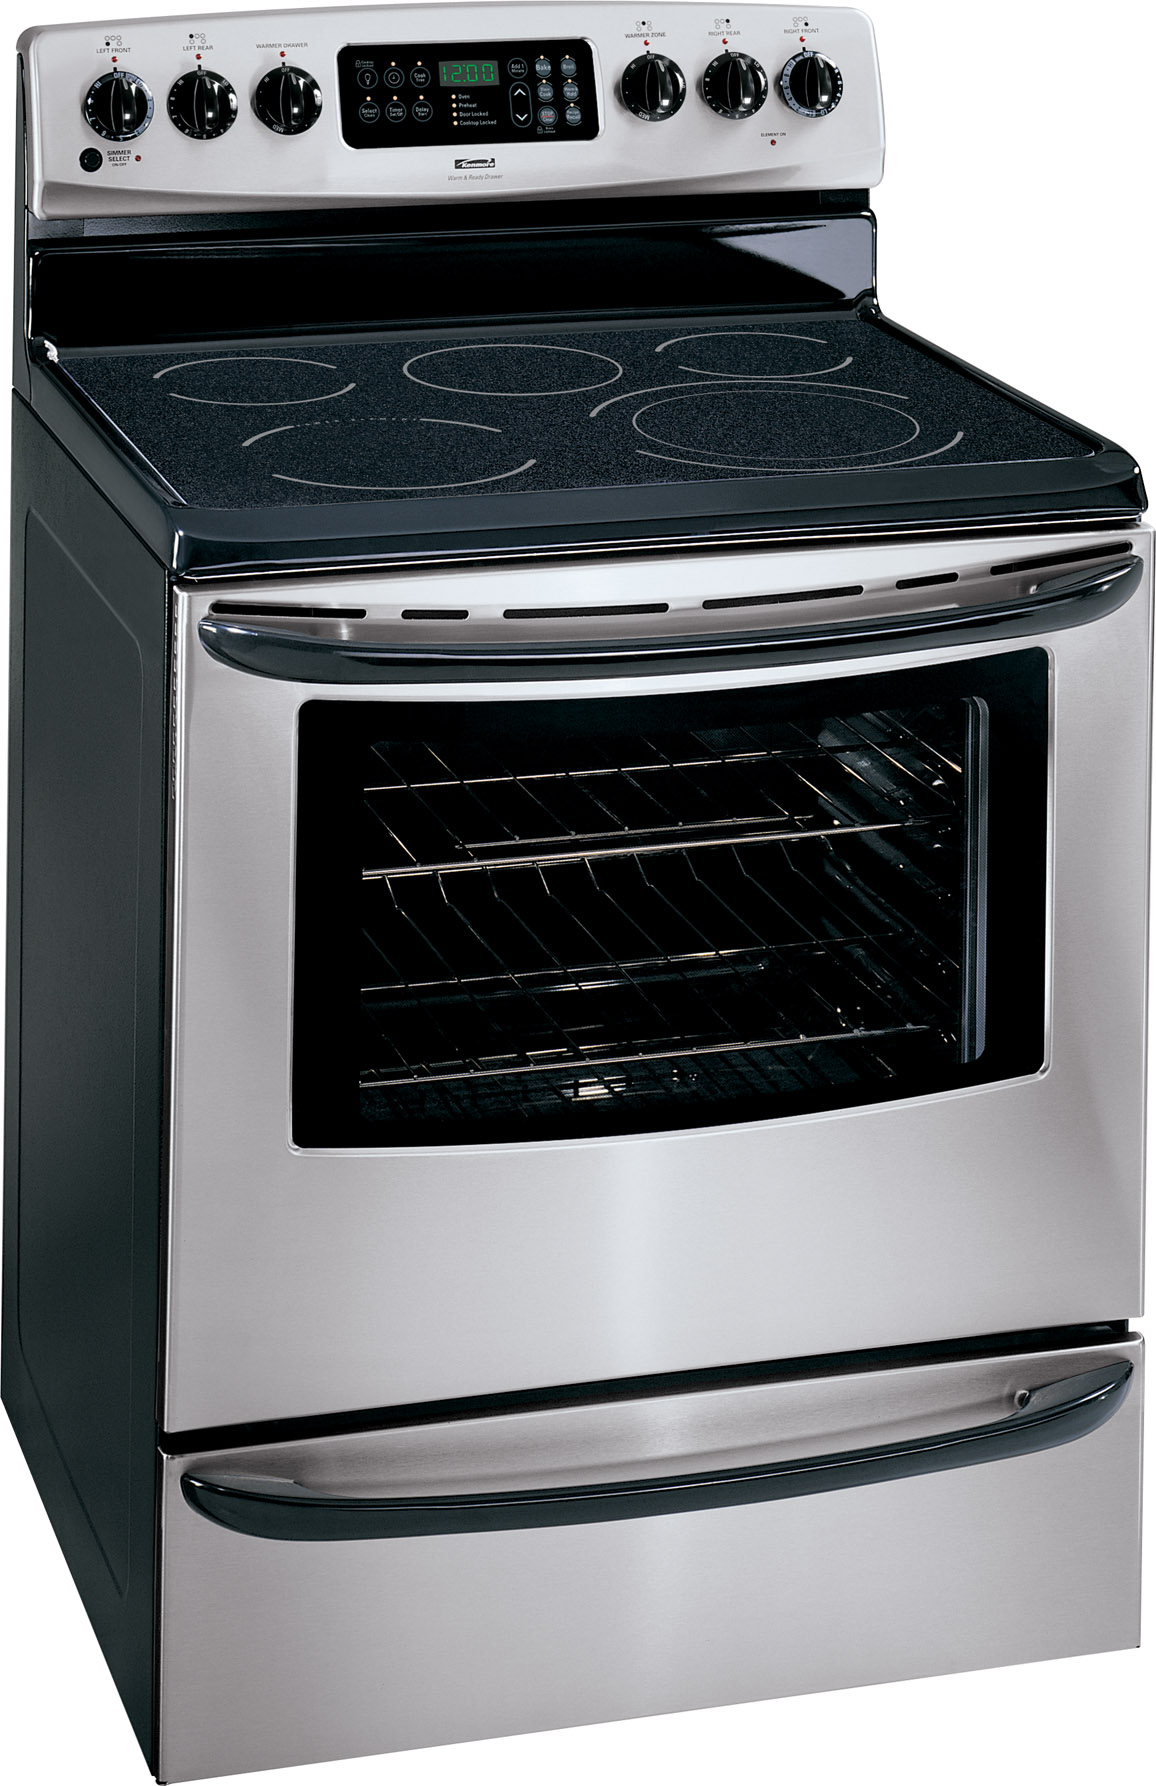 Kenmore Range/Stove/Oven Model 790.96533501 Parts